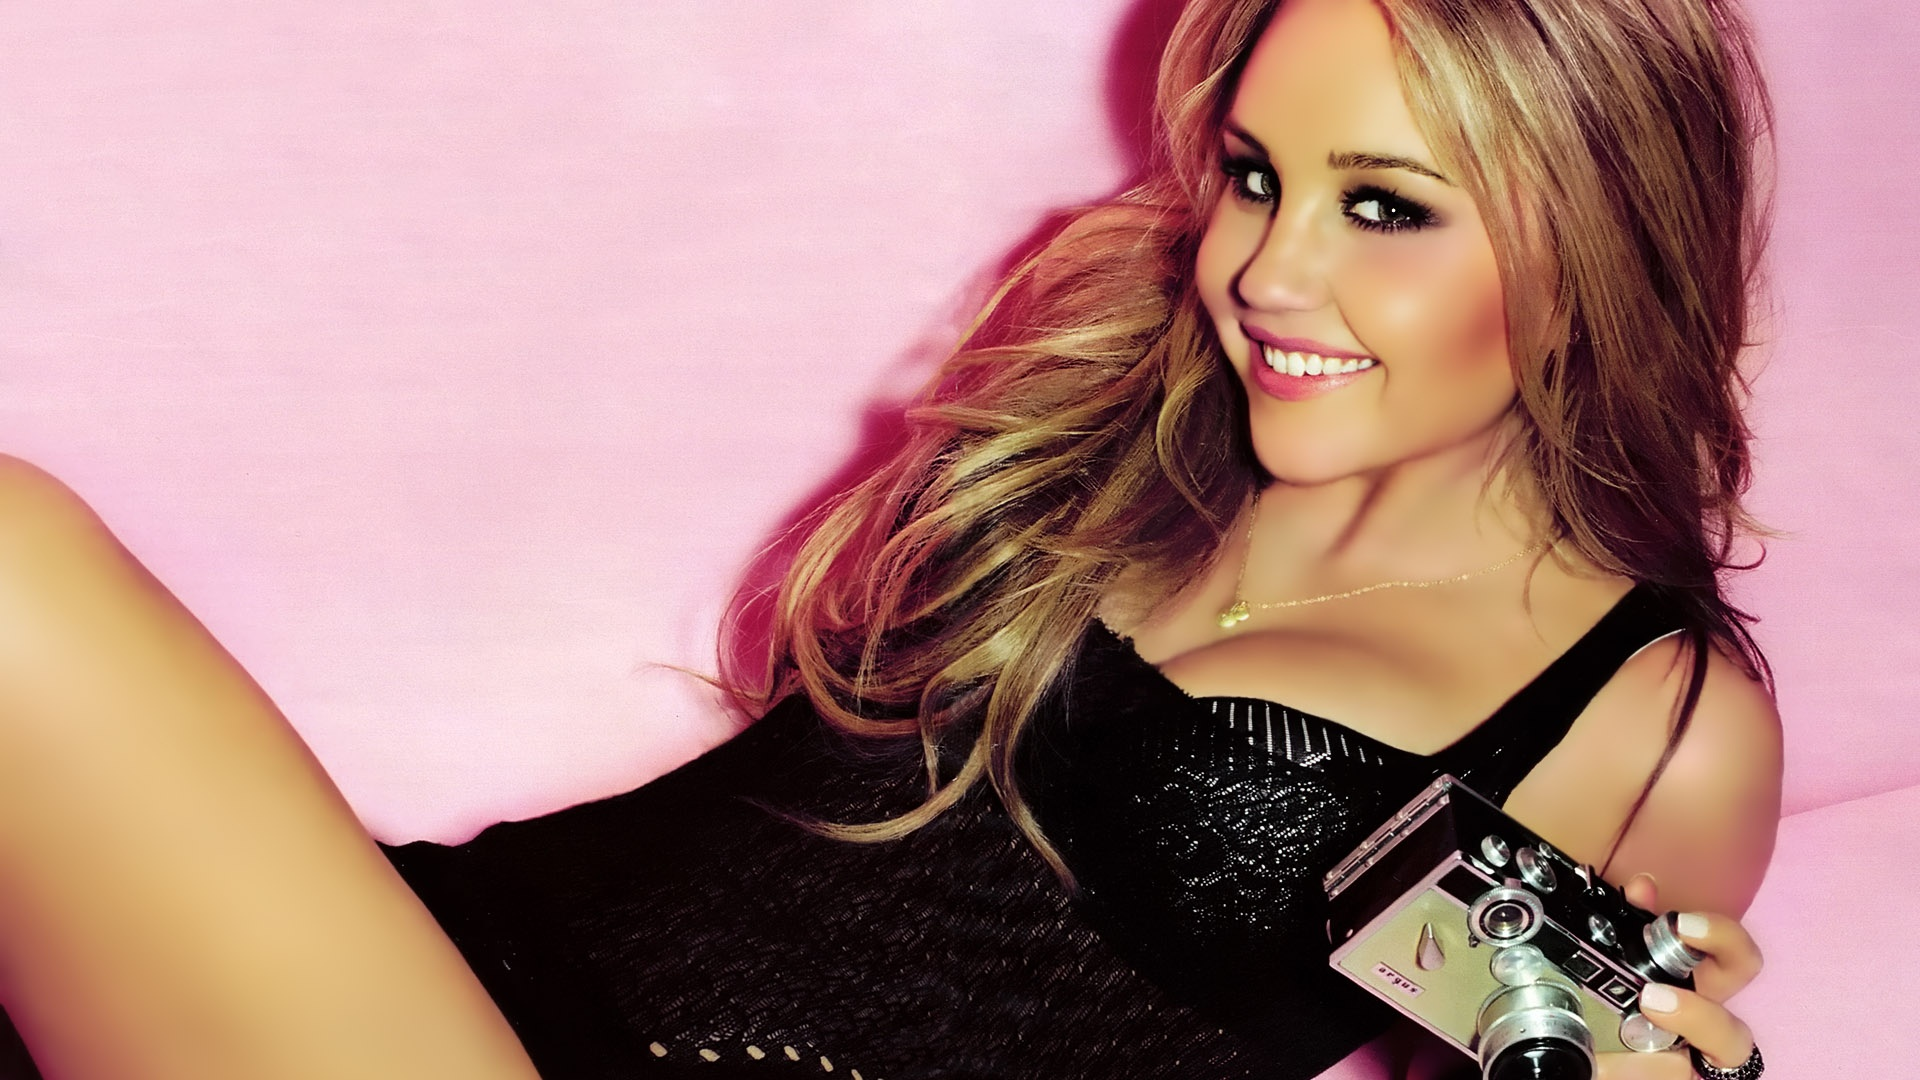 Definition quality wallpapers of amanda bynes 2013 cool hd wallpaper